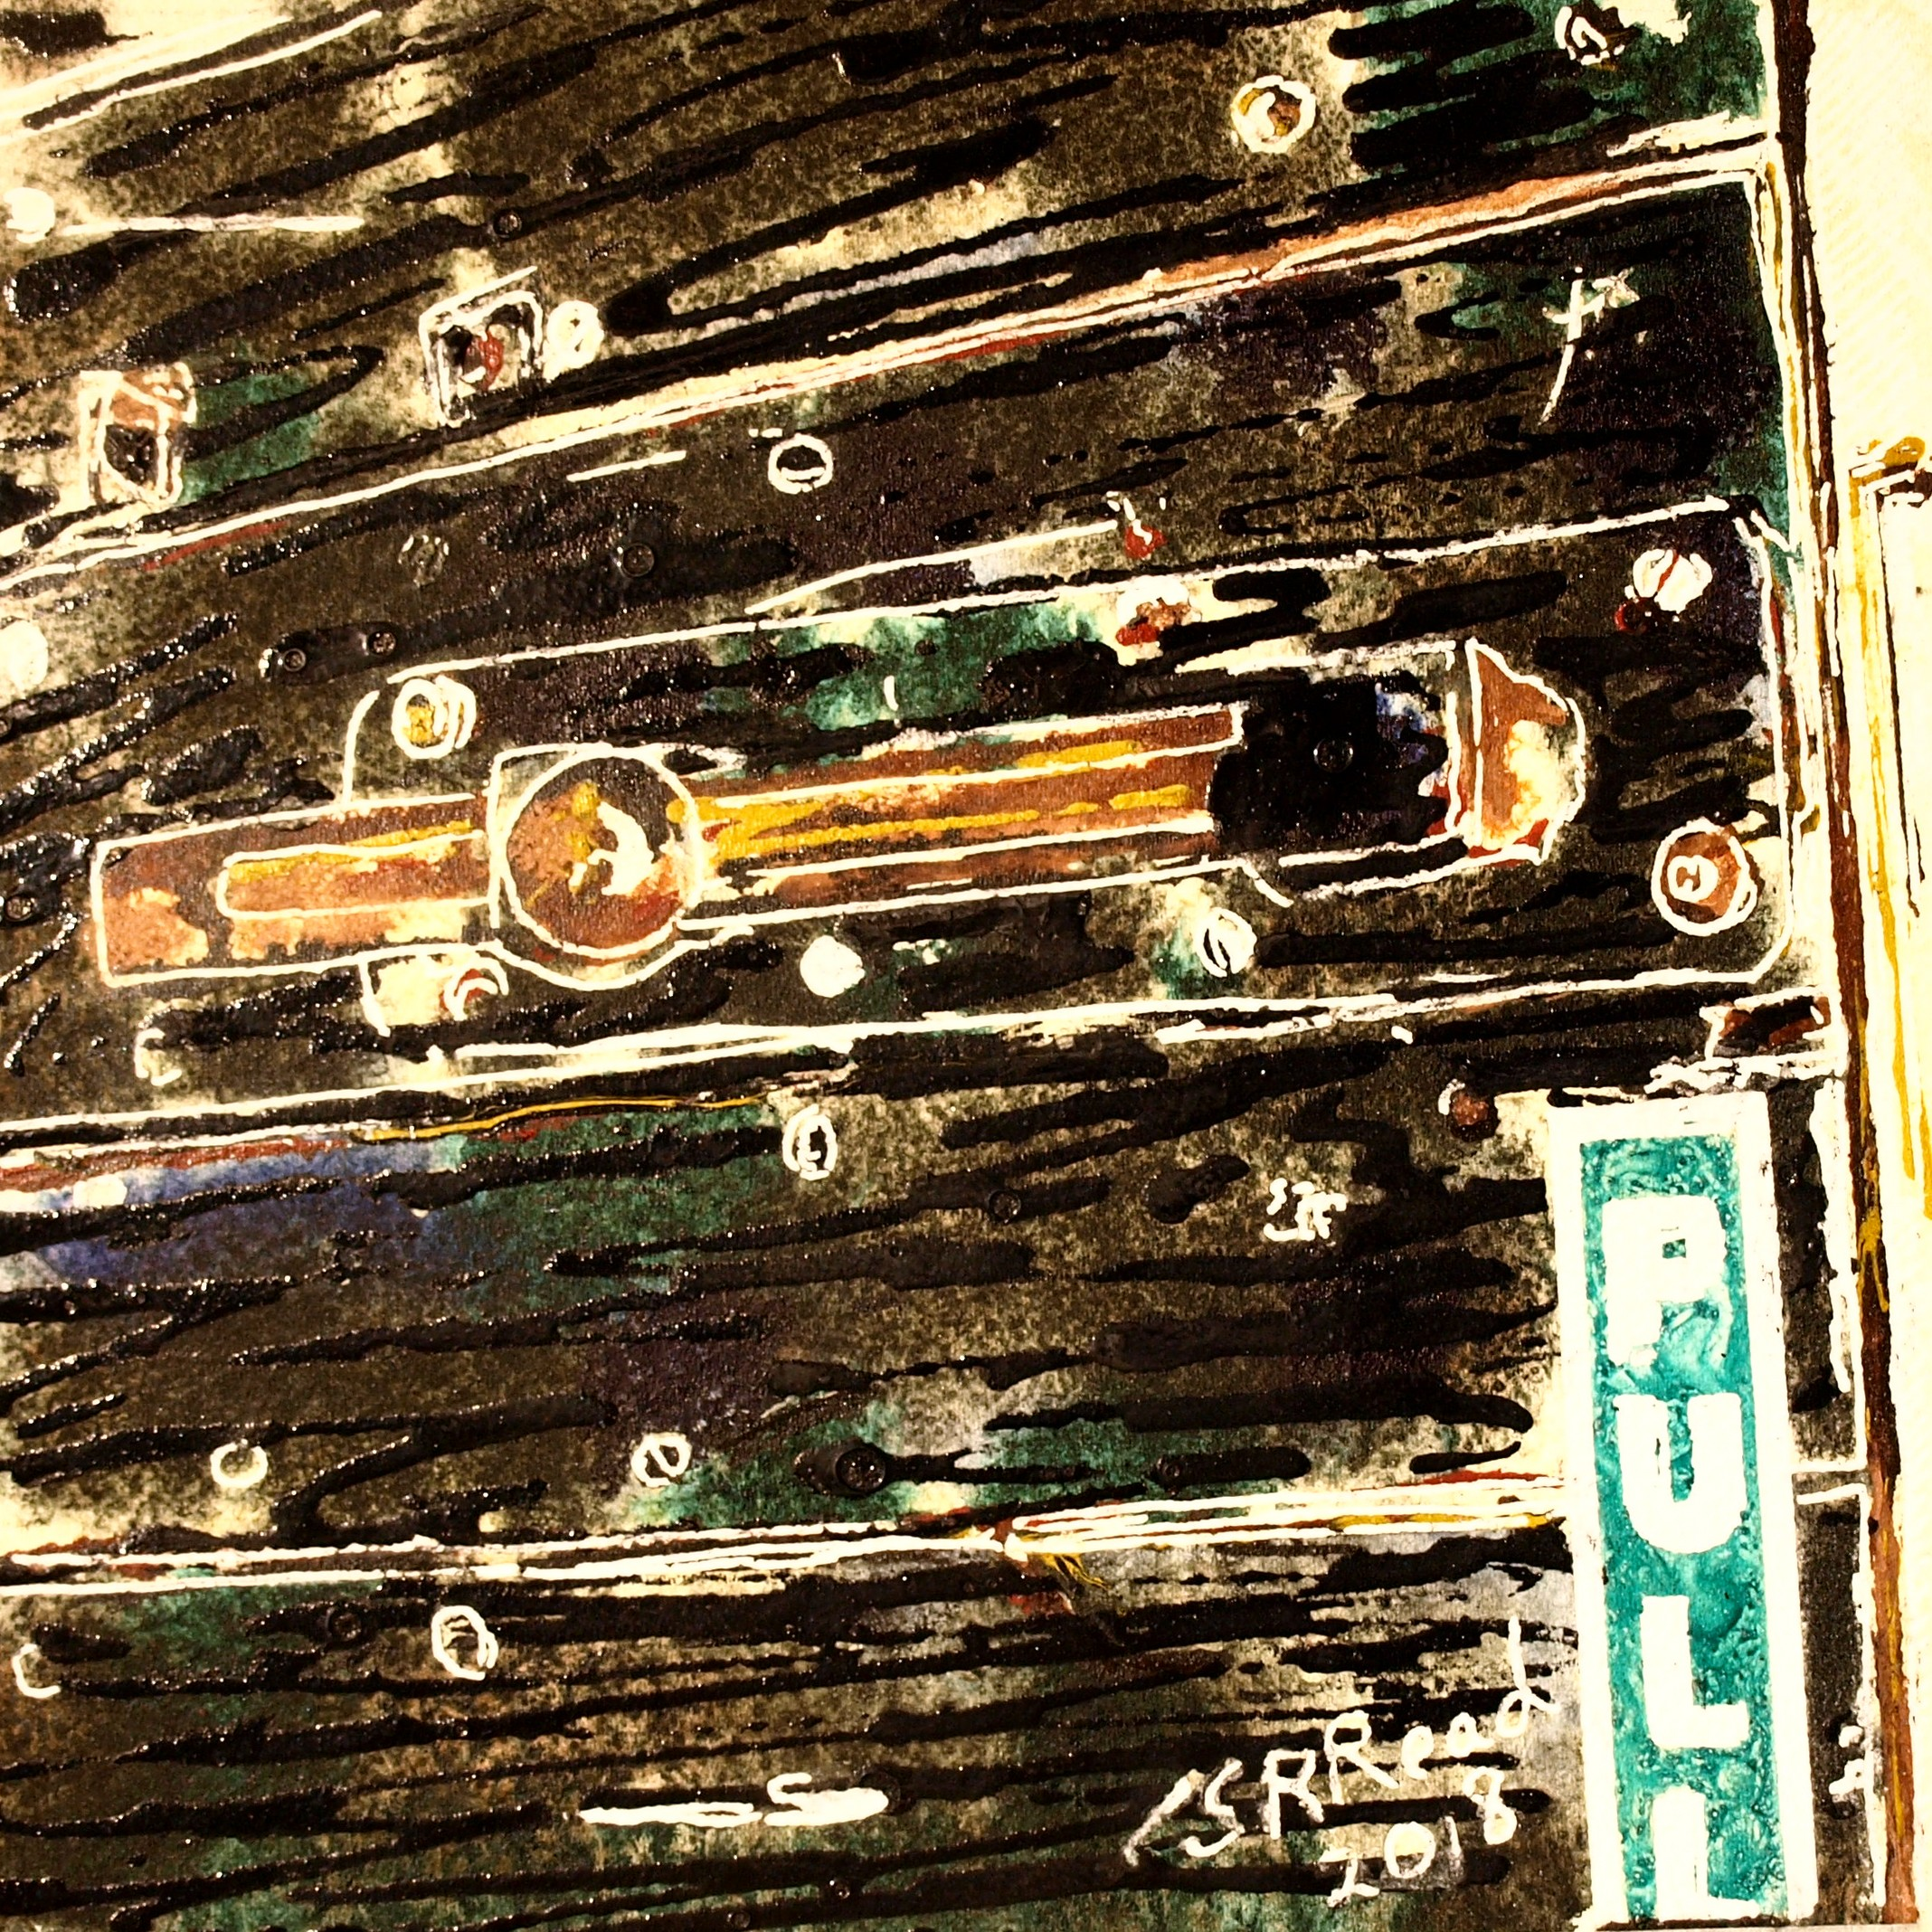 Painting of architectural detail, bolt on a door.22 Bolt - ©2018 - Cathy Read -Watercolour and Acrylic - 17.8x17.8cm